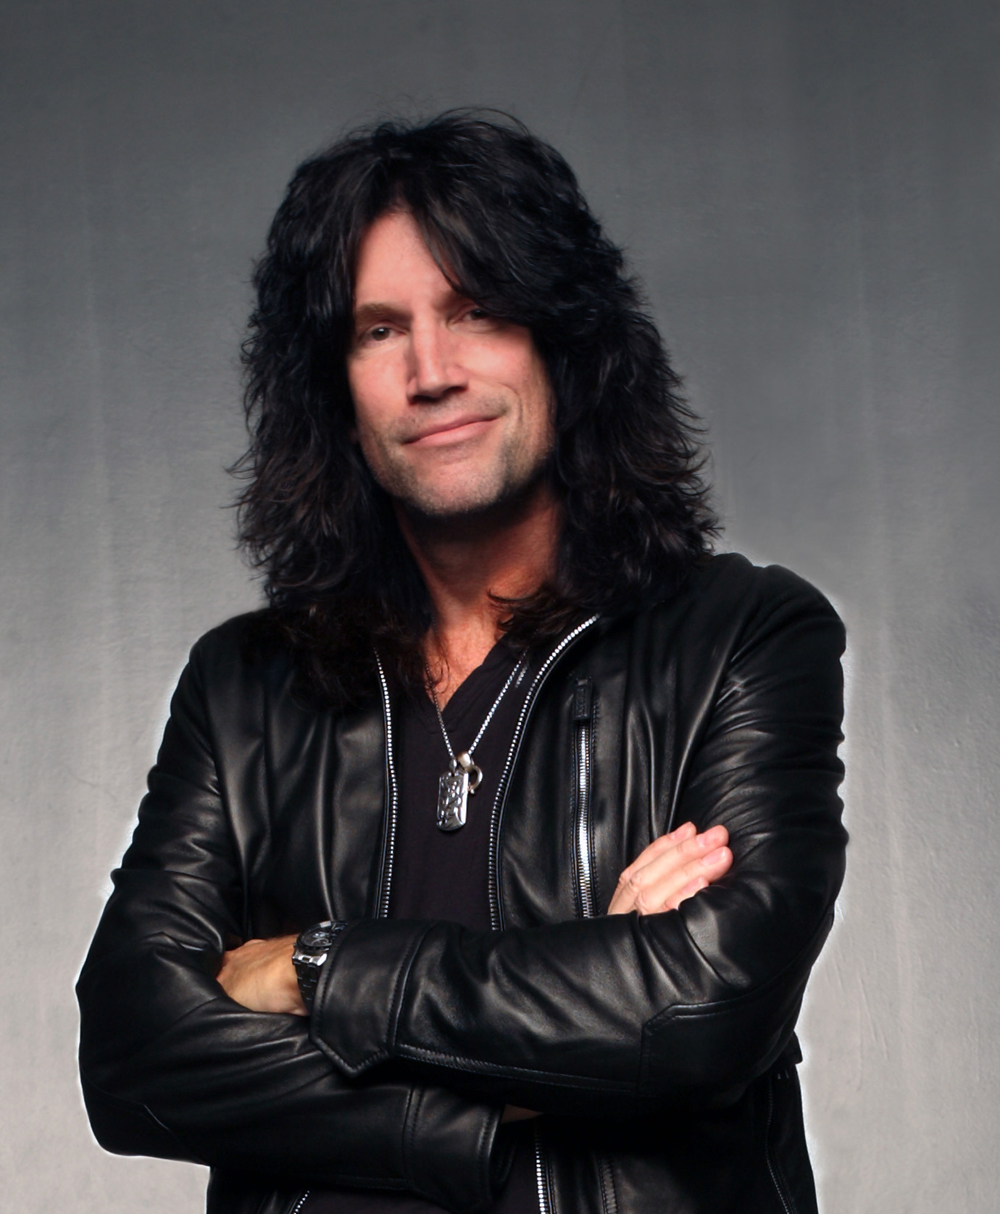 Kiss guitarist Tommy Thayer, AKA the Spaceman, shares his grail songs.